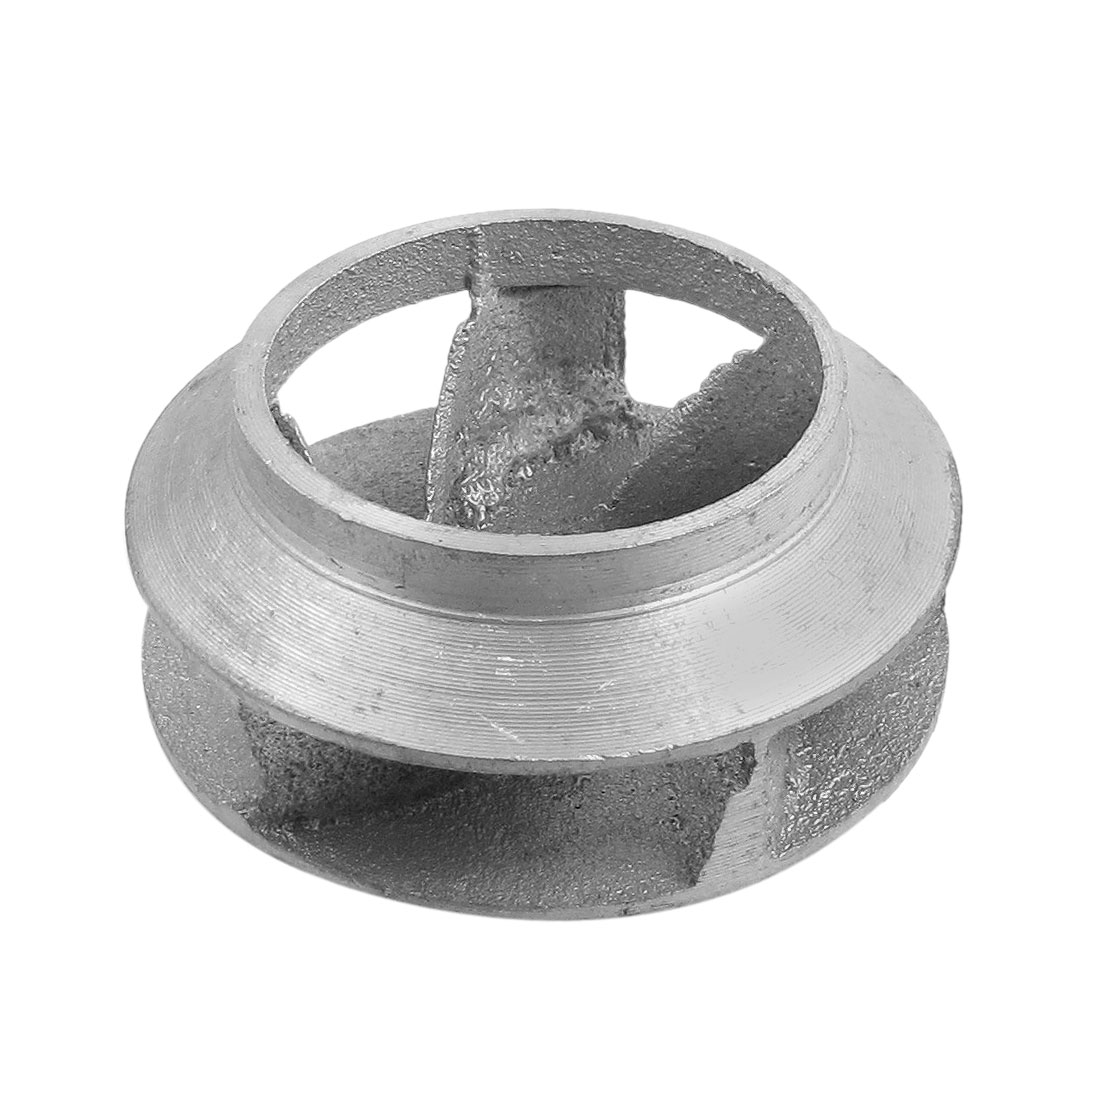 "2.4"" Hole Diameter Aluminum Precision Pump Impeller Casting Part"